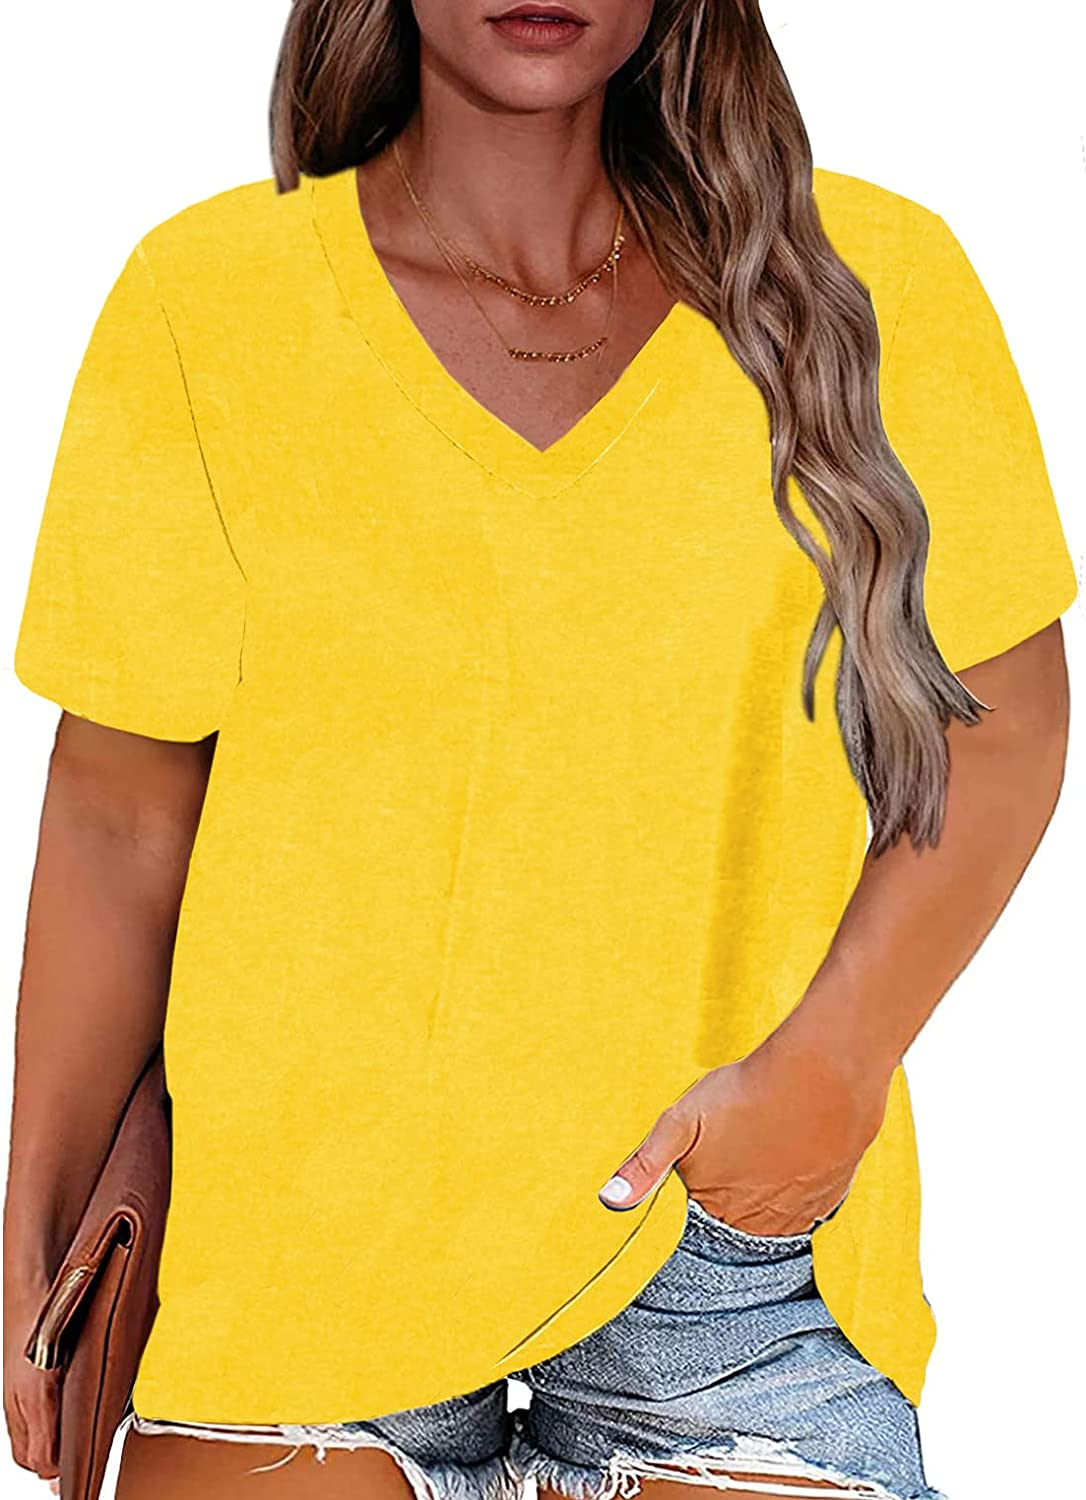 Women's Plus Size Tops V Neck Solid Color Short Sleeve Comfy Blouse Casual T Shirts